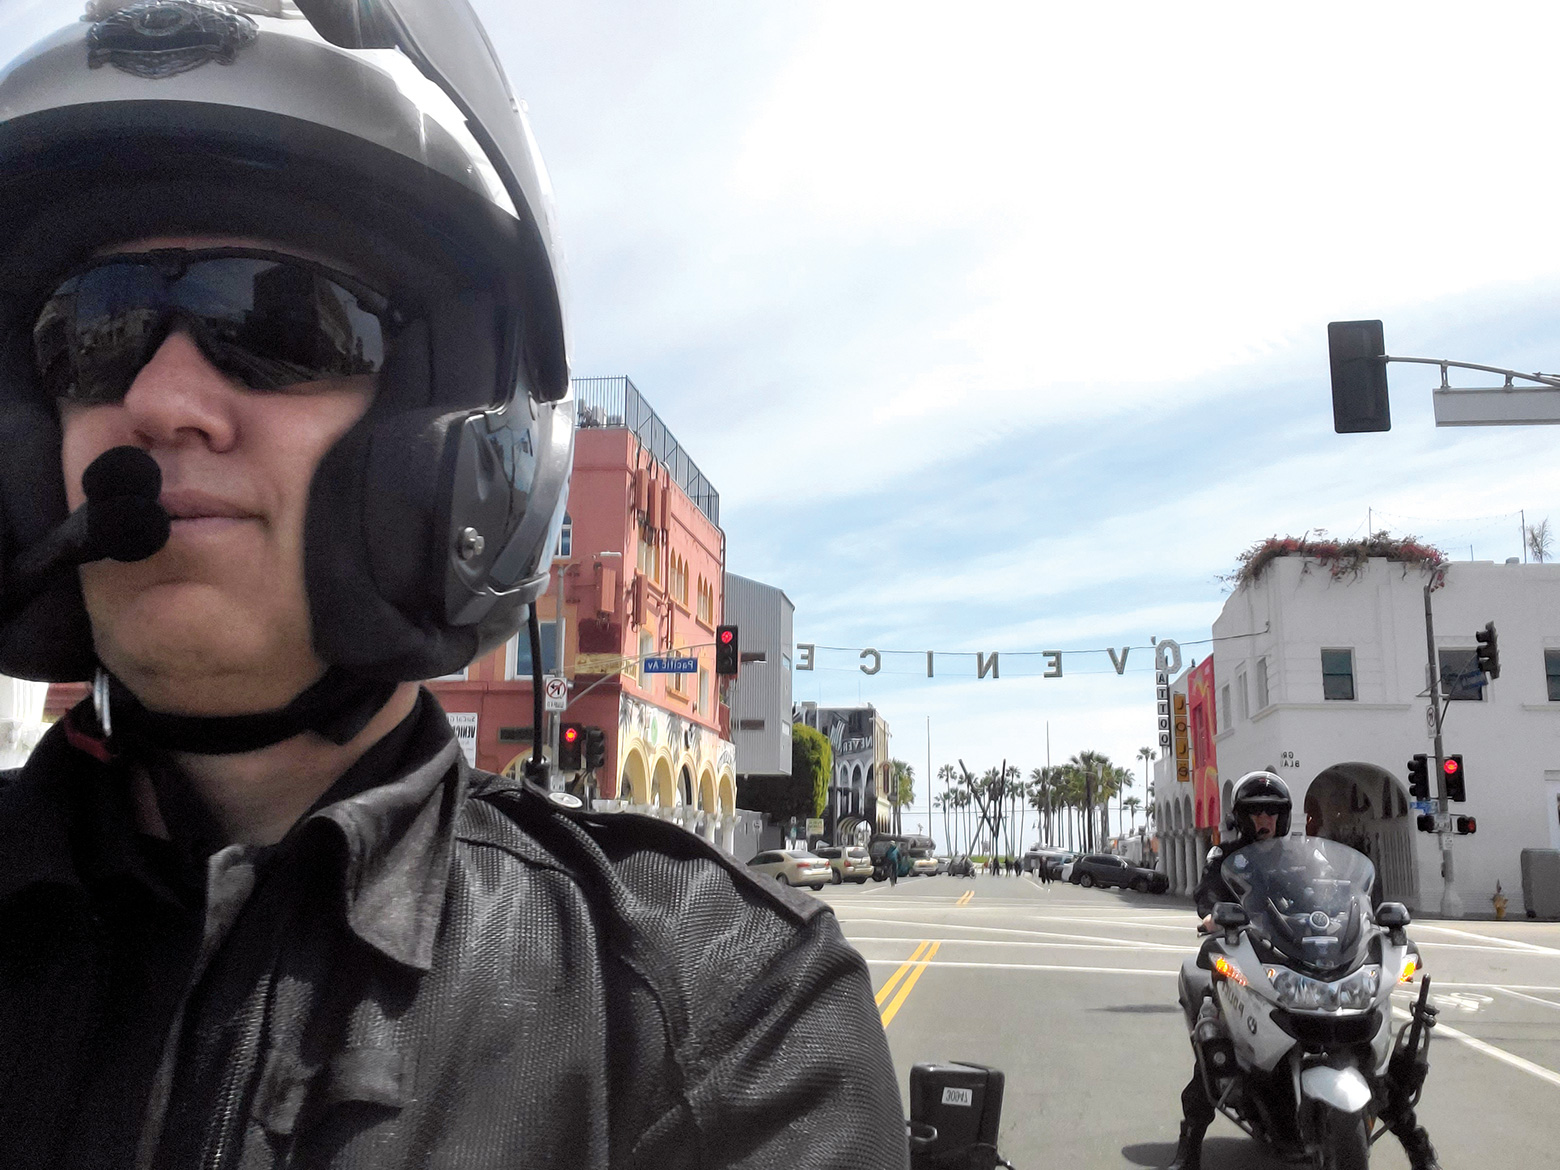 lapd-reserves-go-above-and-beyond-during-covid-19-39-reserve-motors-on-duty